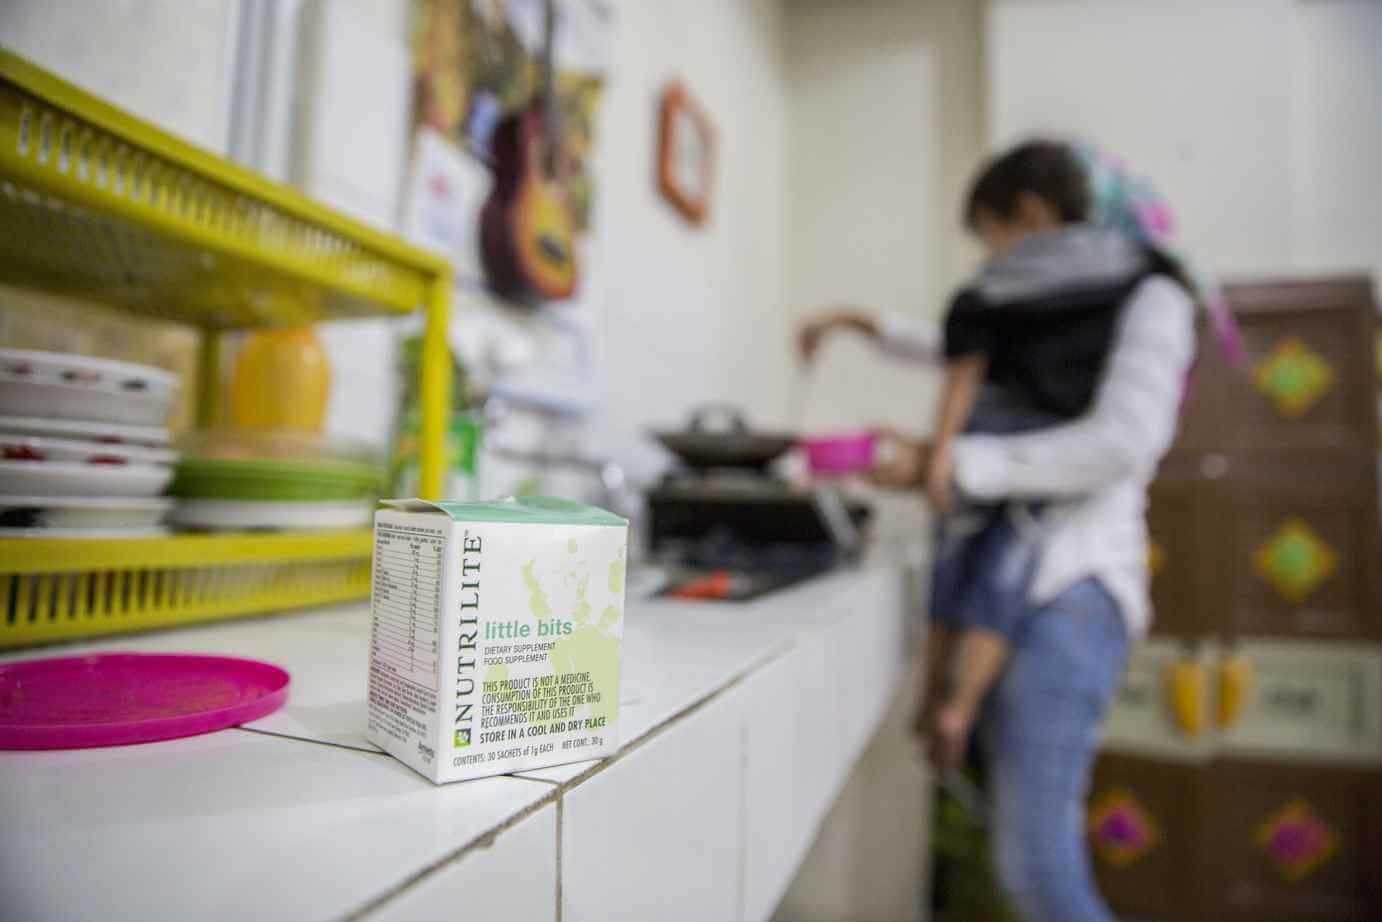 A mom holds her child in her kitchen in the background, preparing a meal with Nutrilite Little Bits. A box of Nutrilite Little Bits sits on the counter in the foreground.